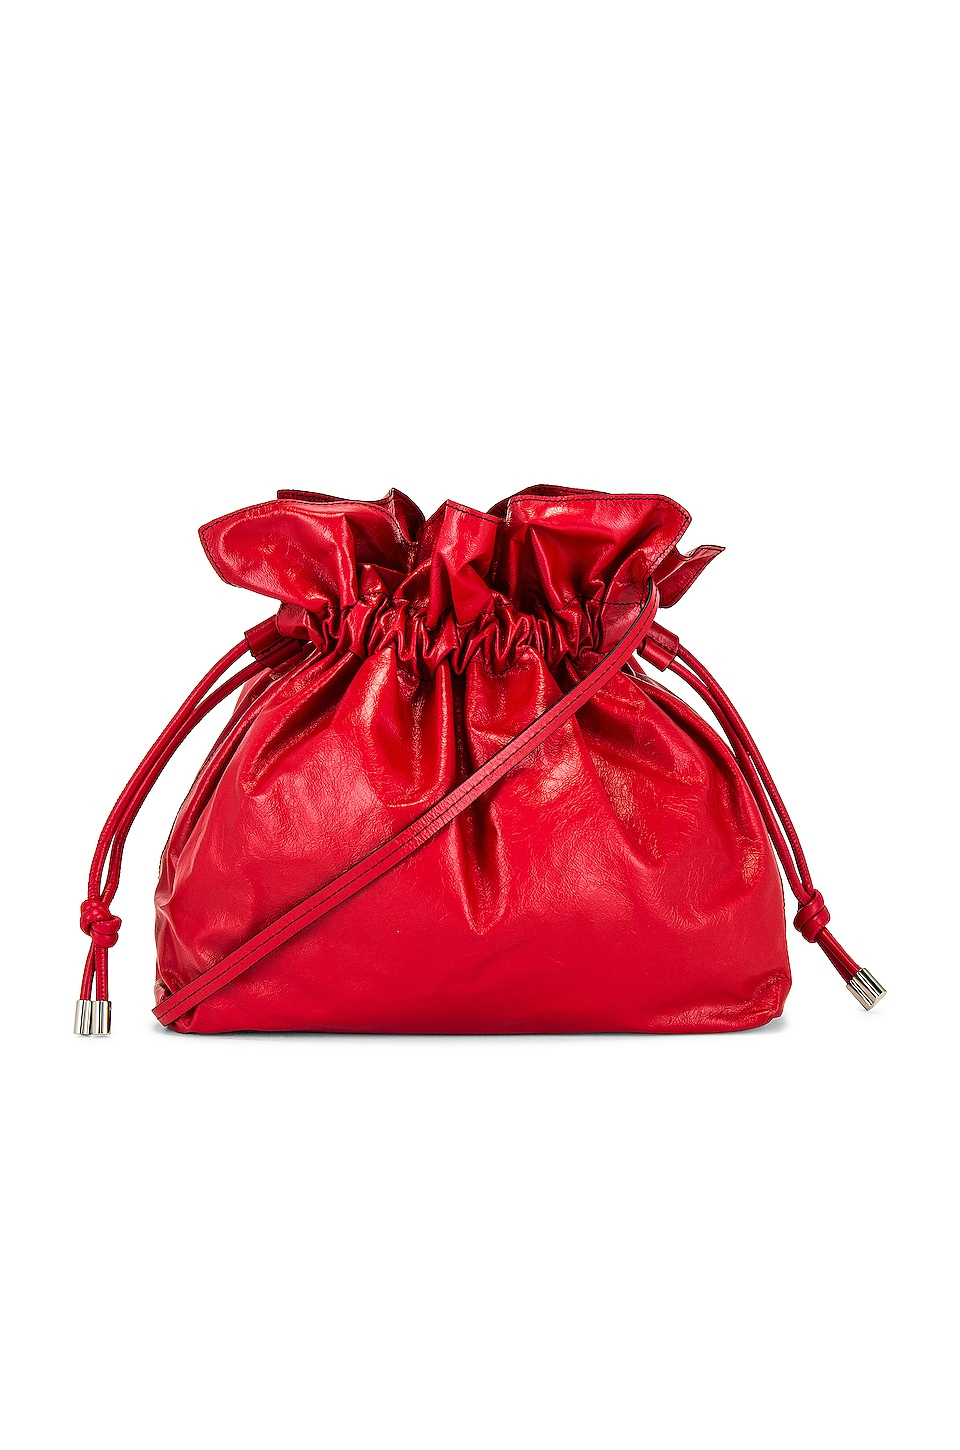 Ailey Bag in Red